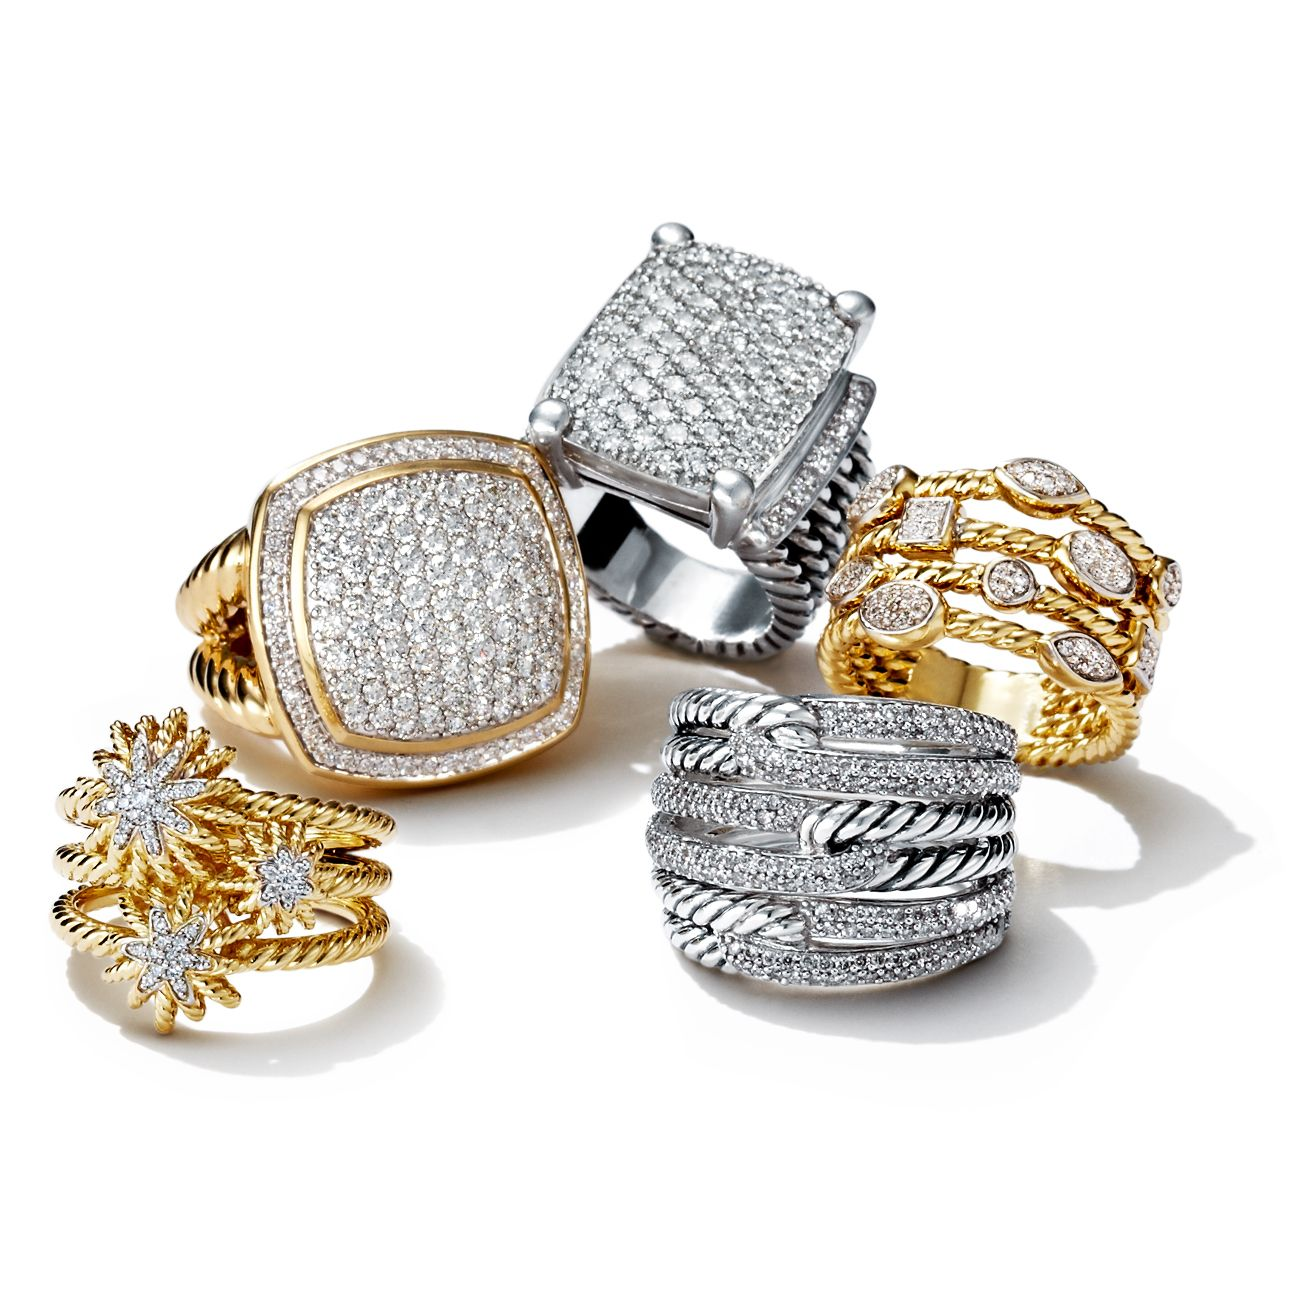 ring yurman rings official x double crossover i david women store link